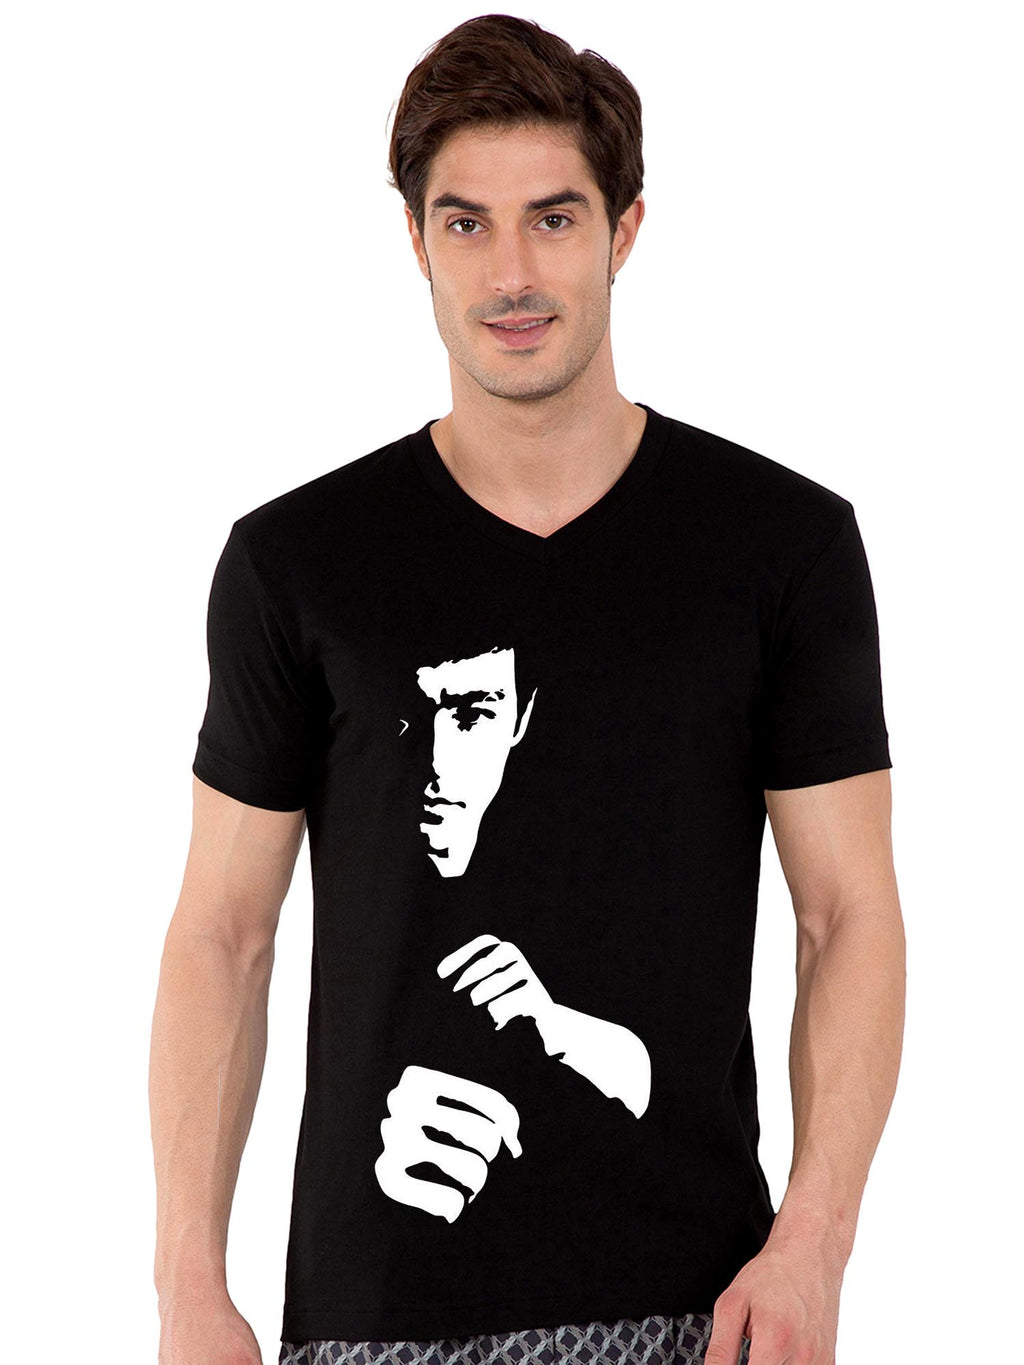 GID Bruce Lee V-neck Half Tshirt - bluehaat